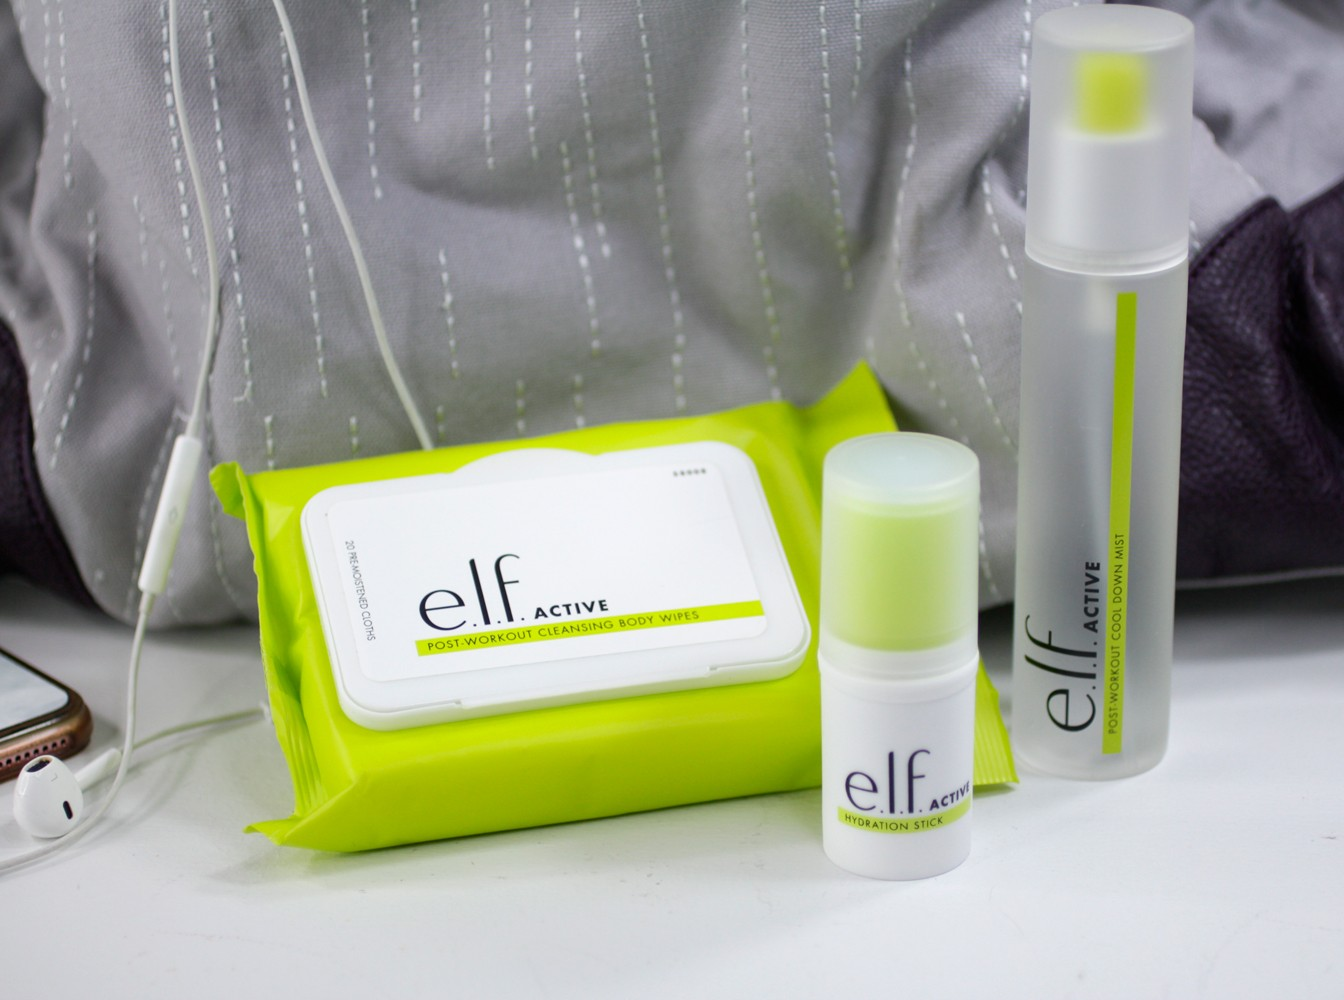 Elf Active Skincare for the Gym